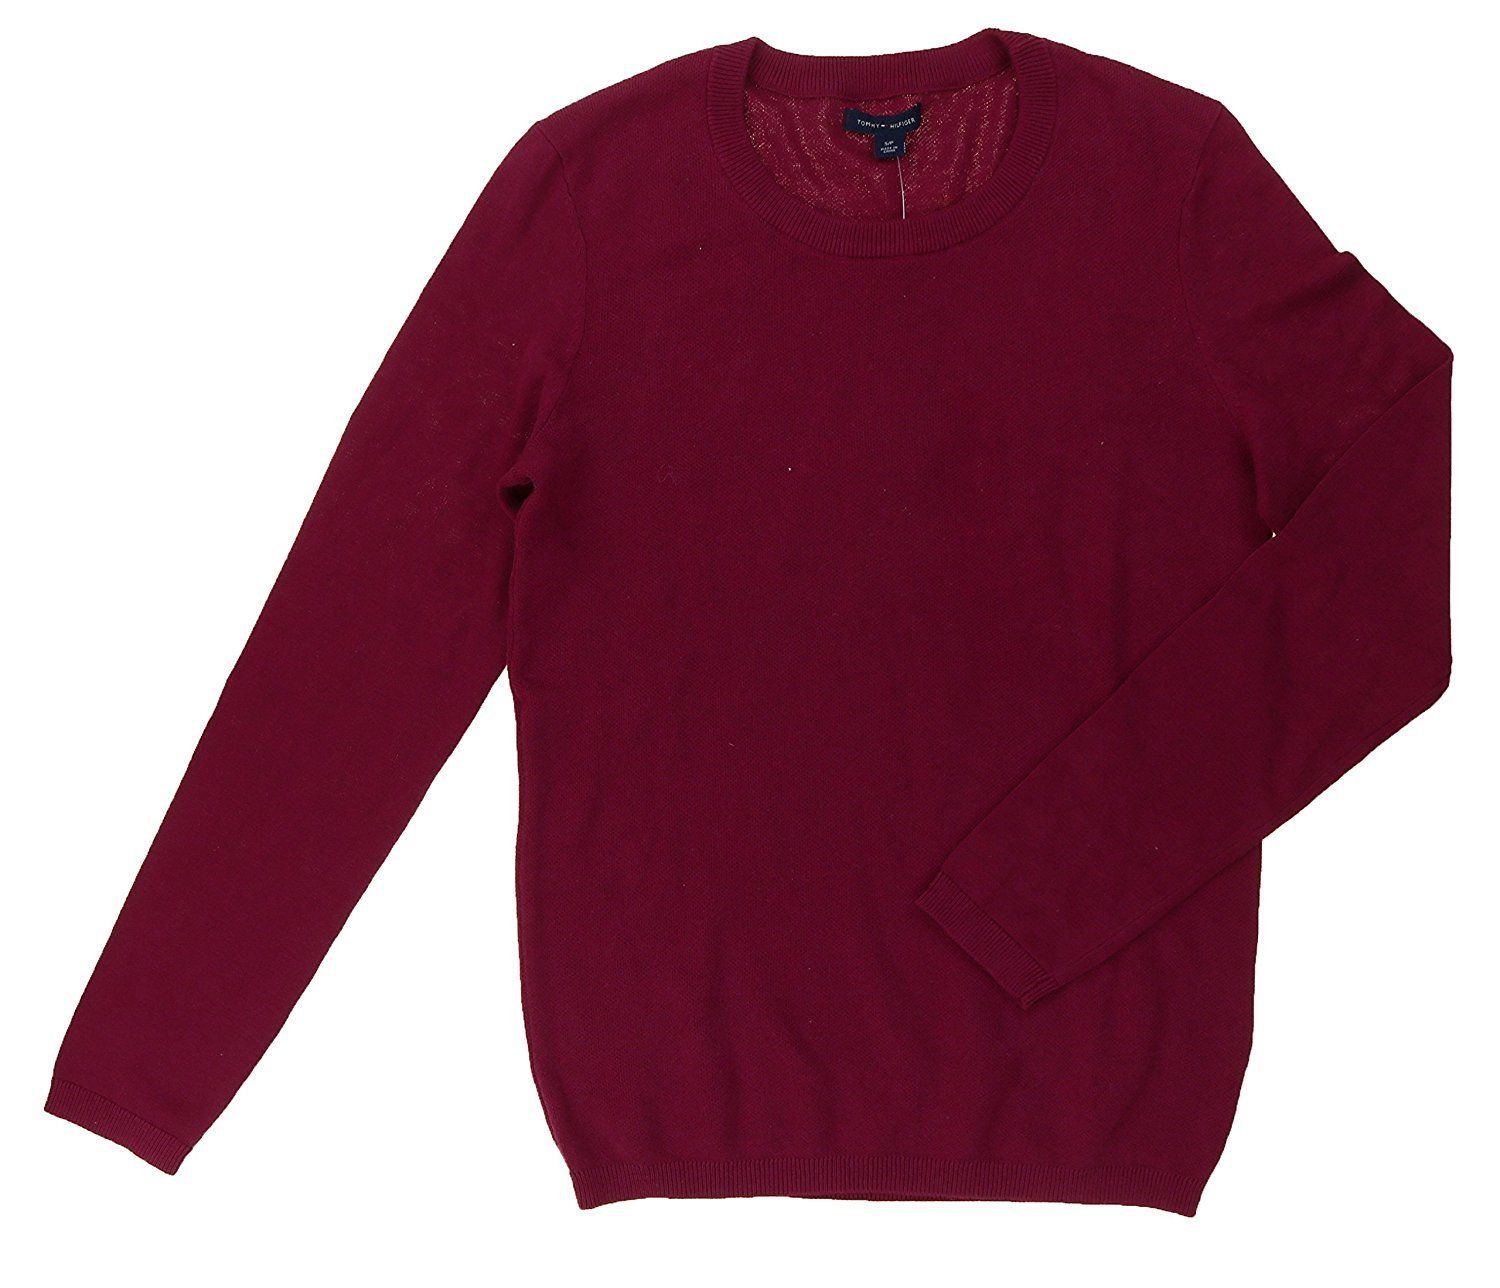 Tommy Hilfiger Womens Size Small Crew Neck Pullover Sweater, Red ...